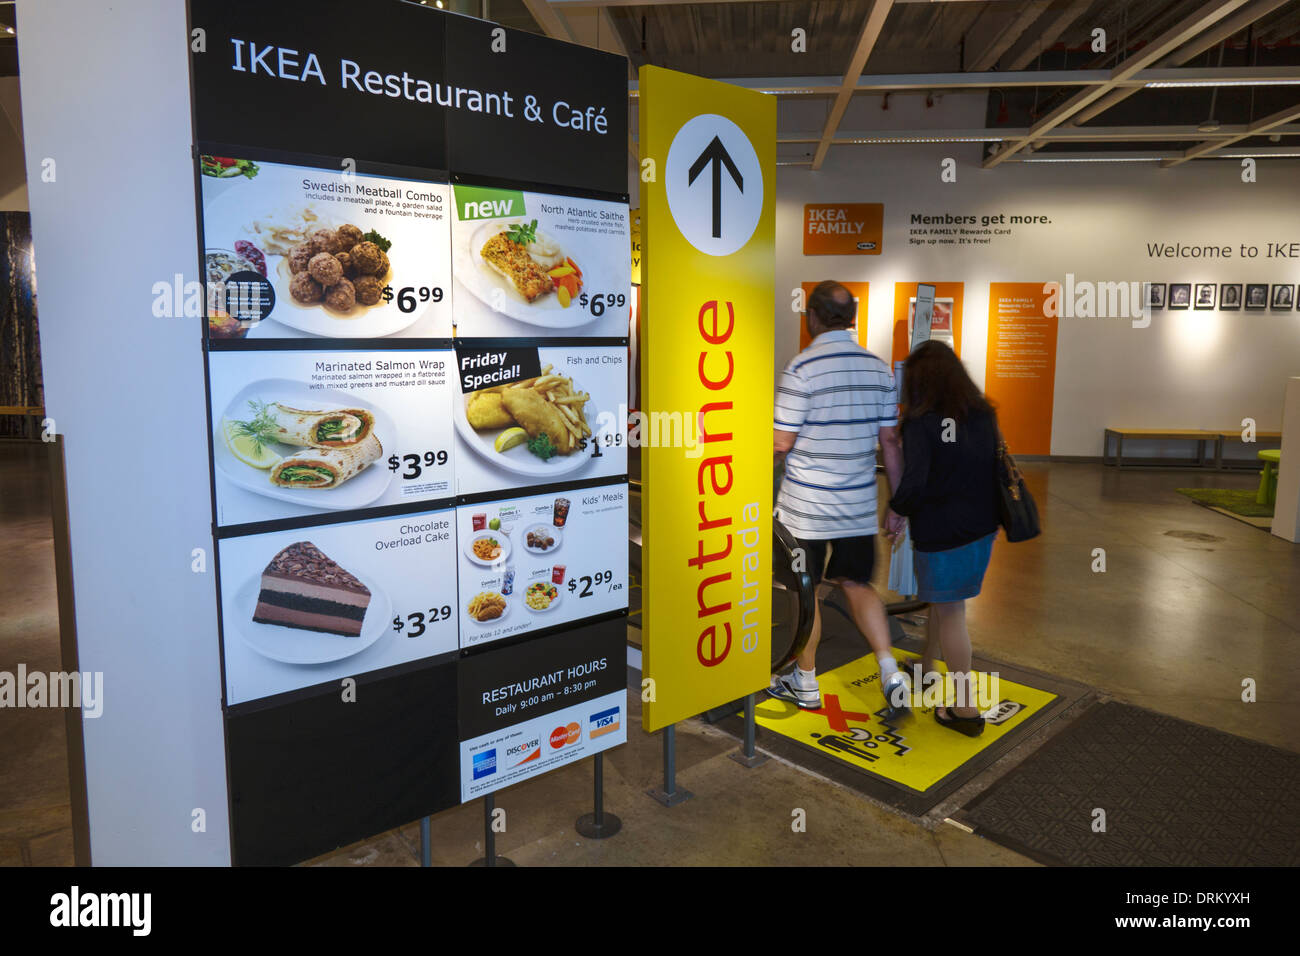 ikea restaurant stockfotos ikea restaurant bilder alamy. Black Bedroom Furniture Sets. Home Design Ideas